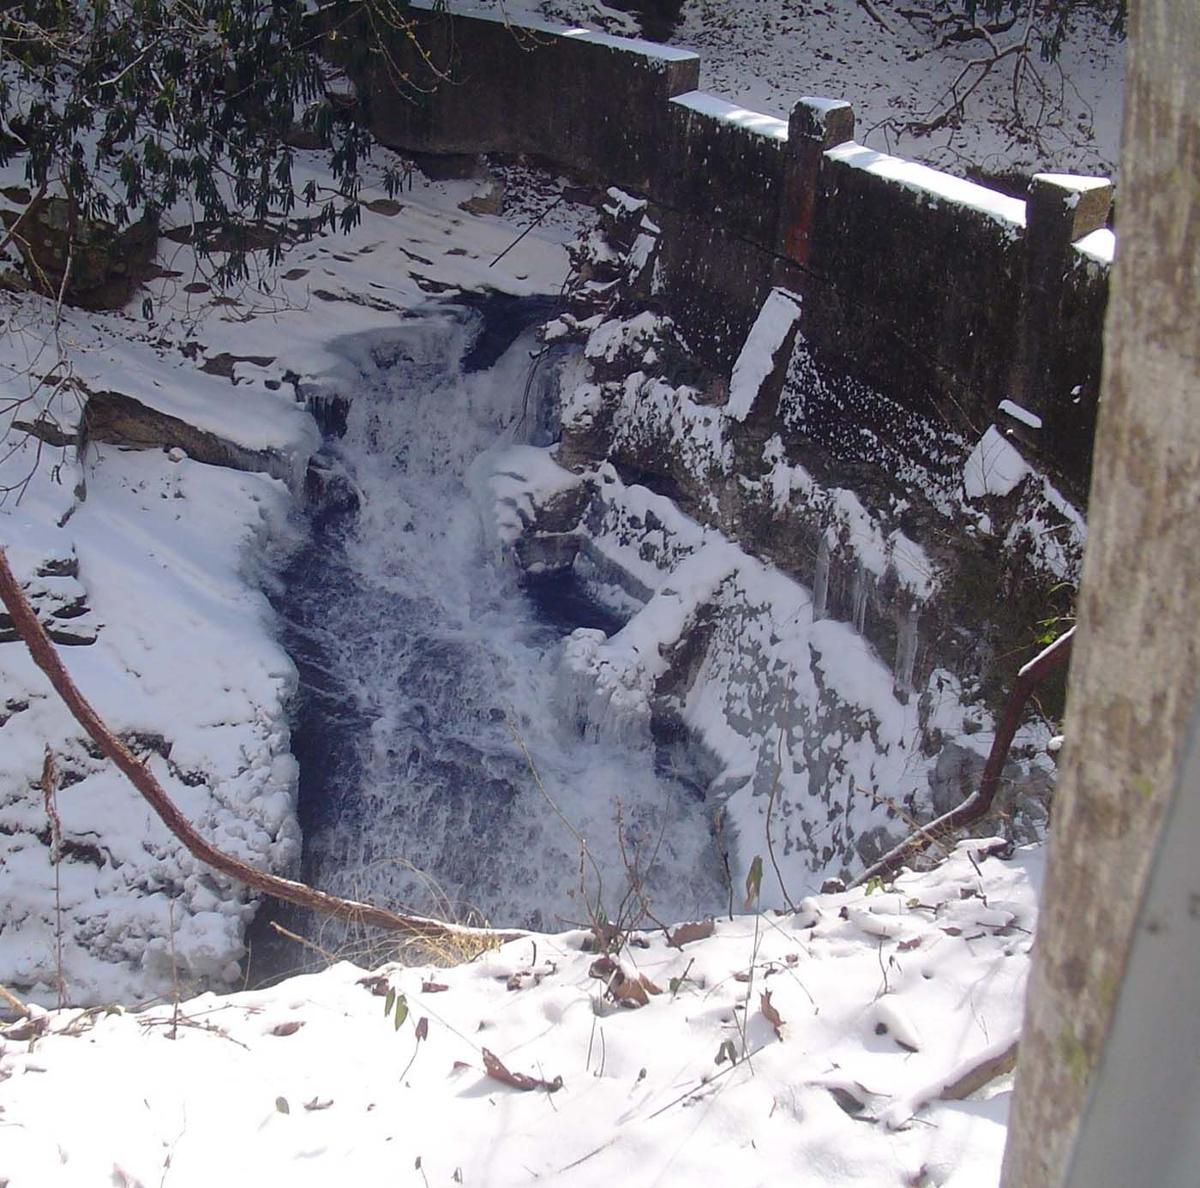 WNC Afield: Catawba Falls covered with snow is a winter wonderland